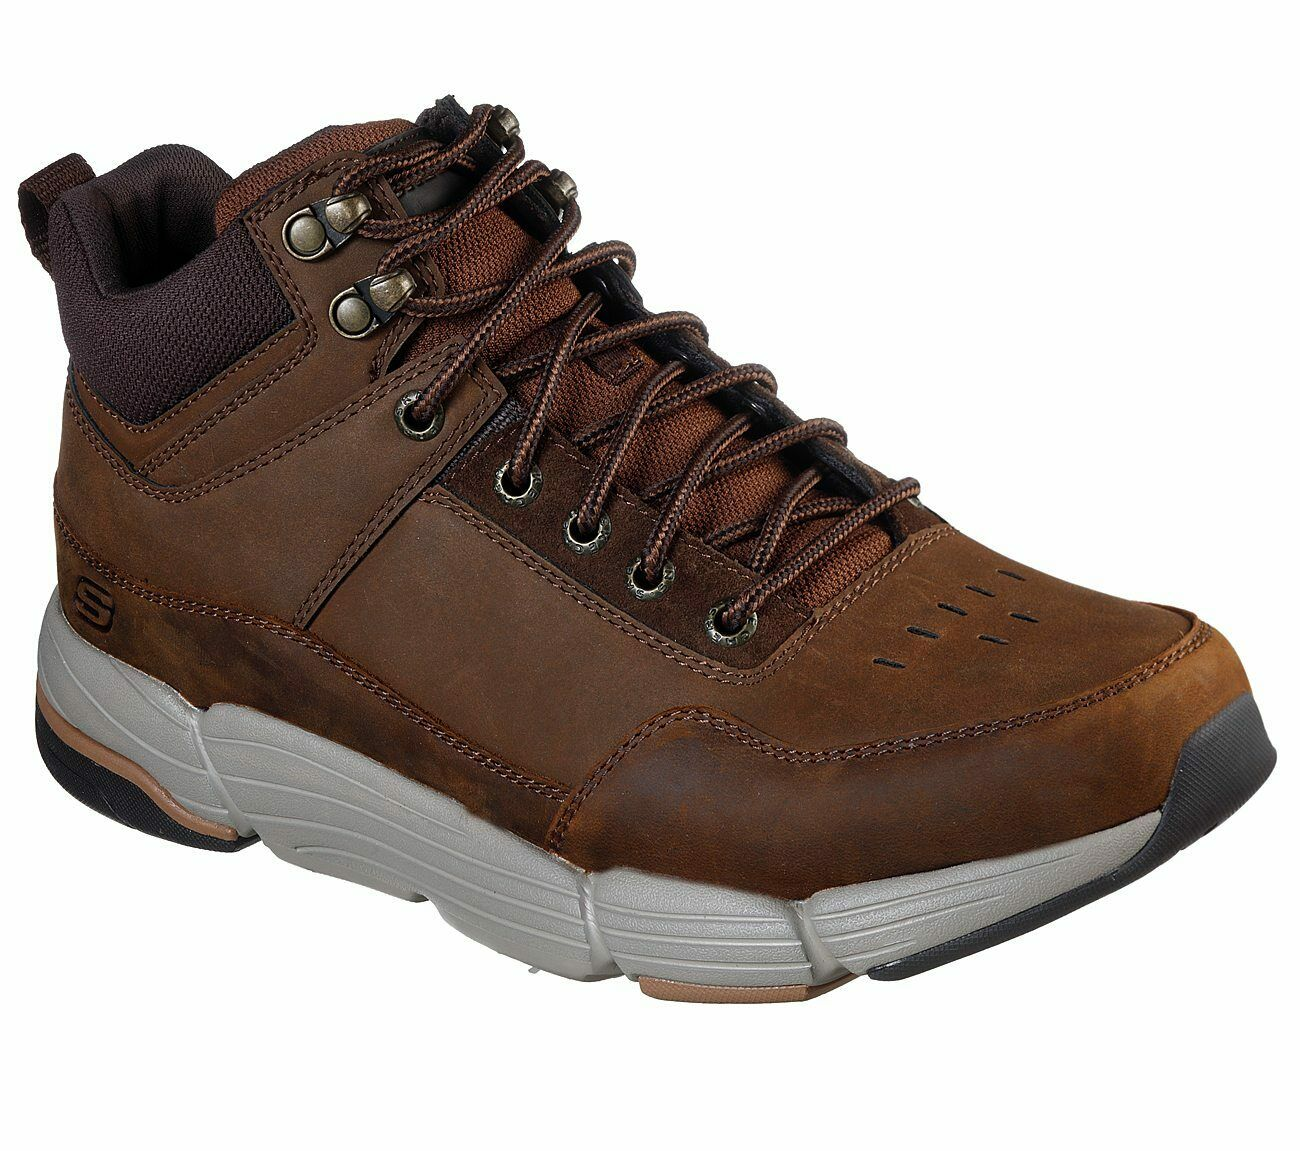 Details zu Skechers Relaxed Fit: Metco Boles Ankle Boots Mens Leather Lace Up Shoes 66252